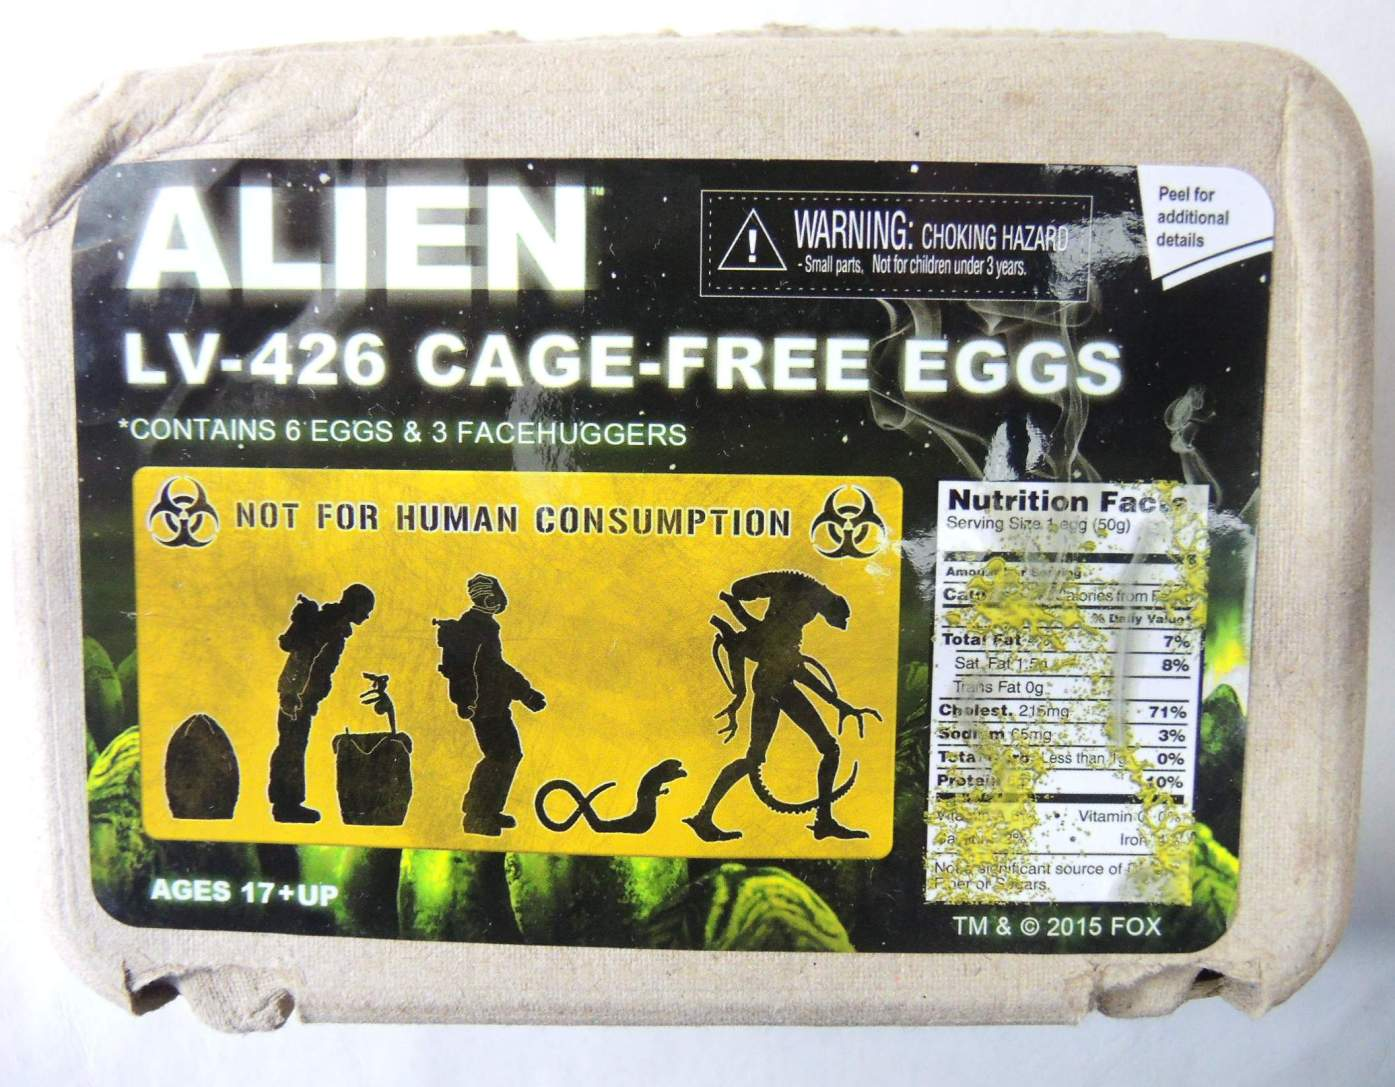 NECA Alien LV-426 Cage-Free Eggs NECA, Alien, Action Figures, 2015, scifi, movie